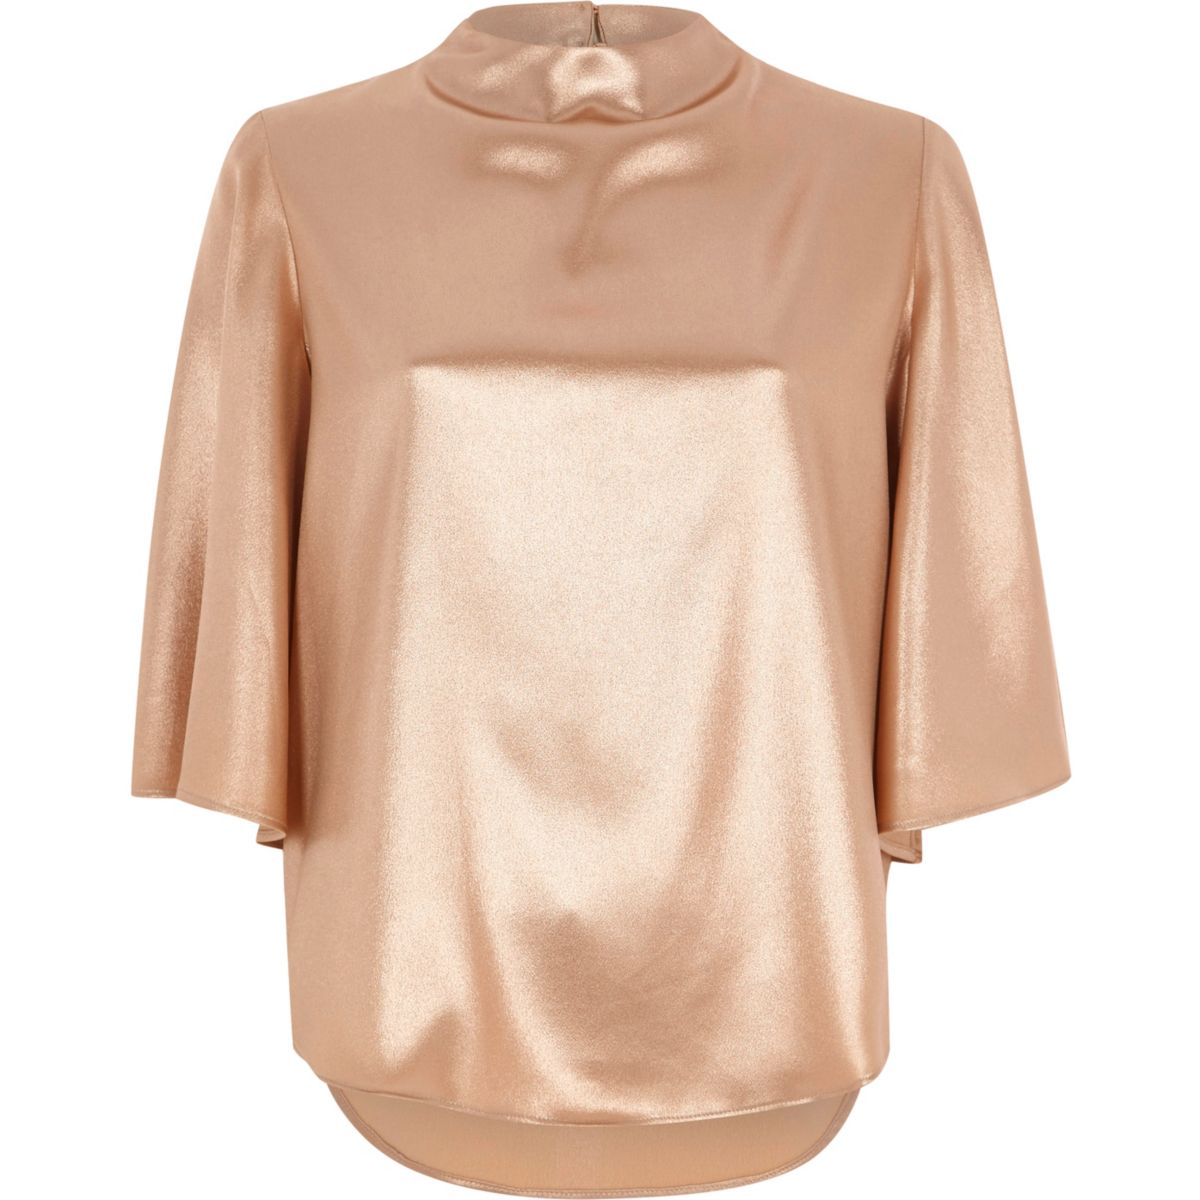 Gold Metallic Top River Island